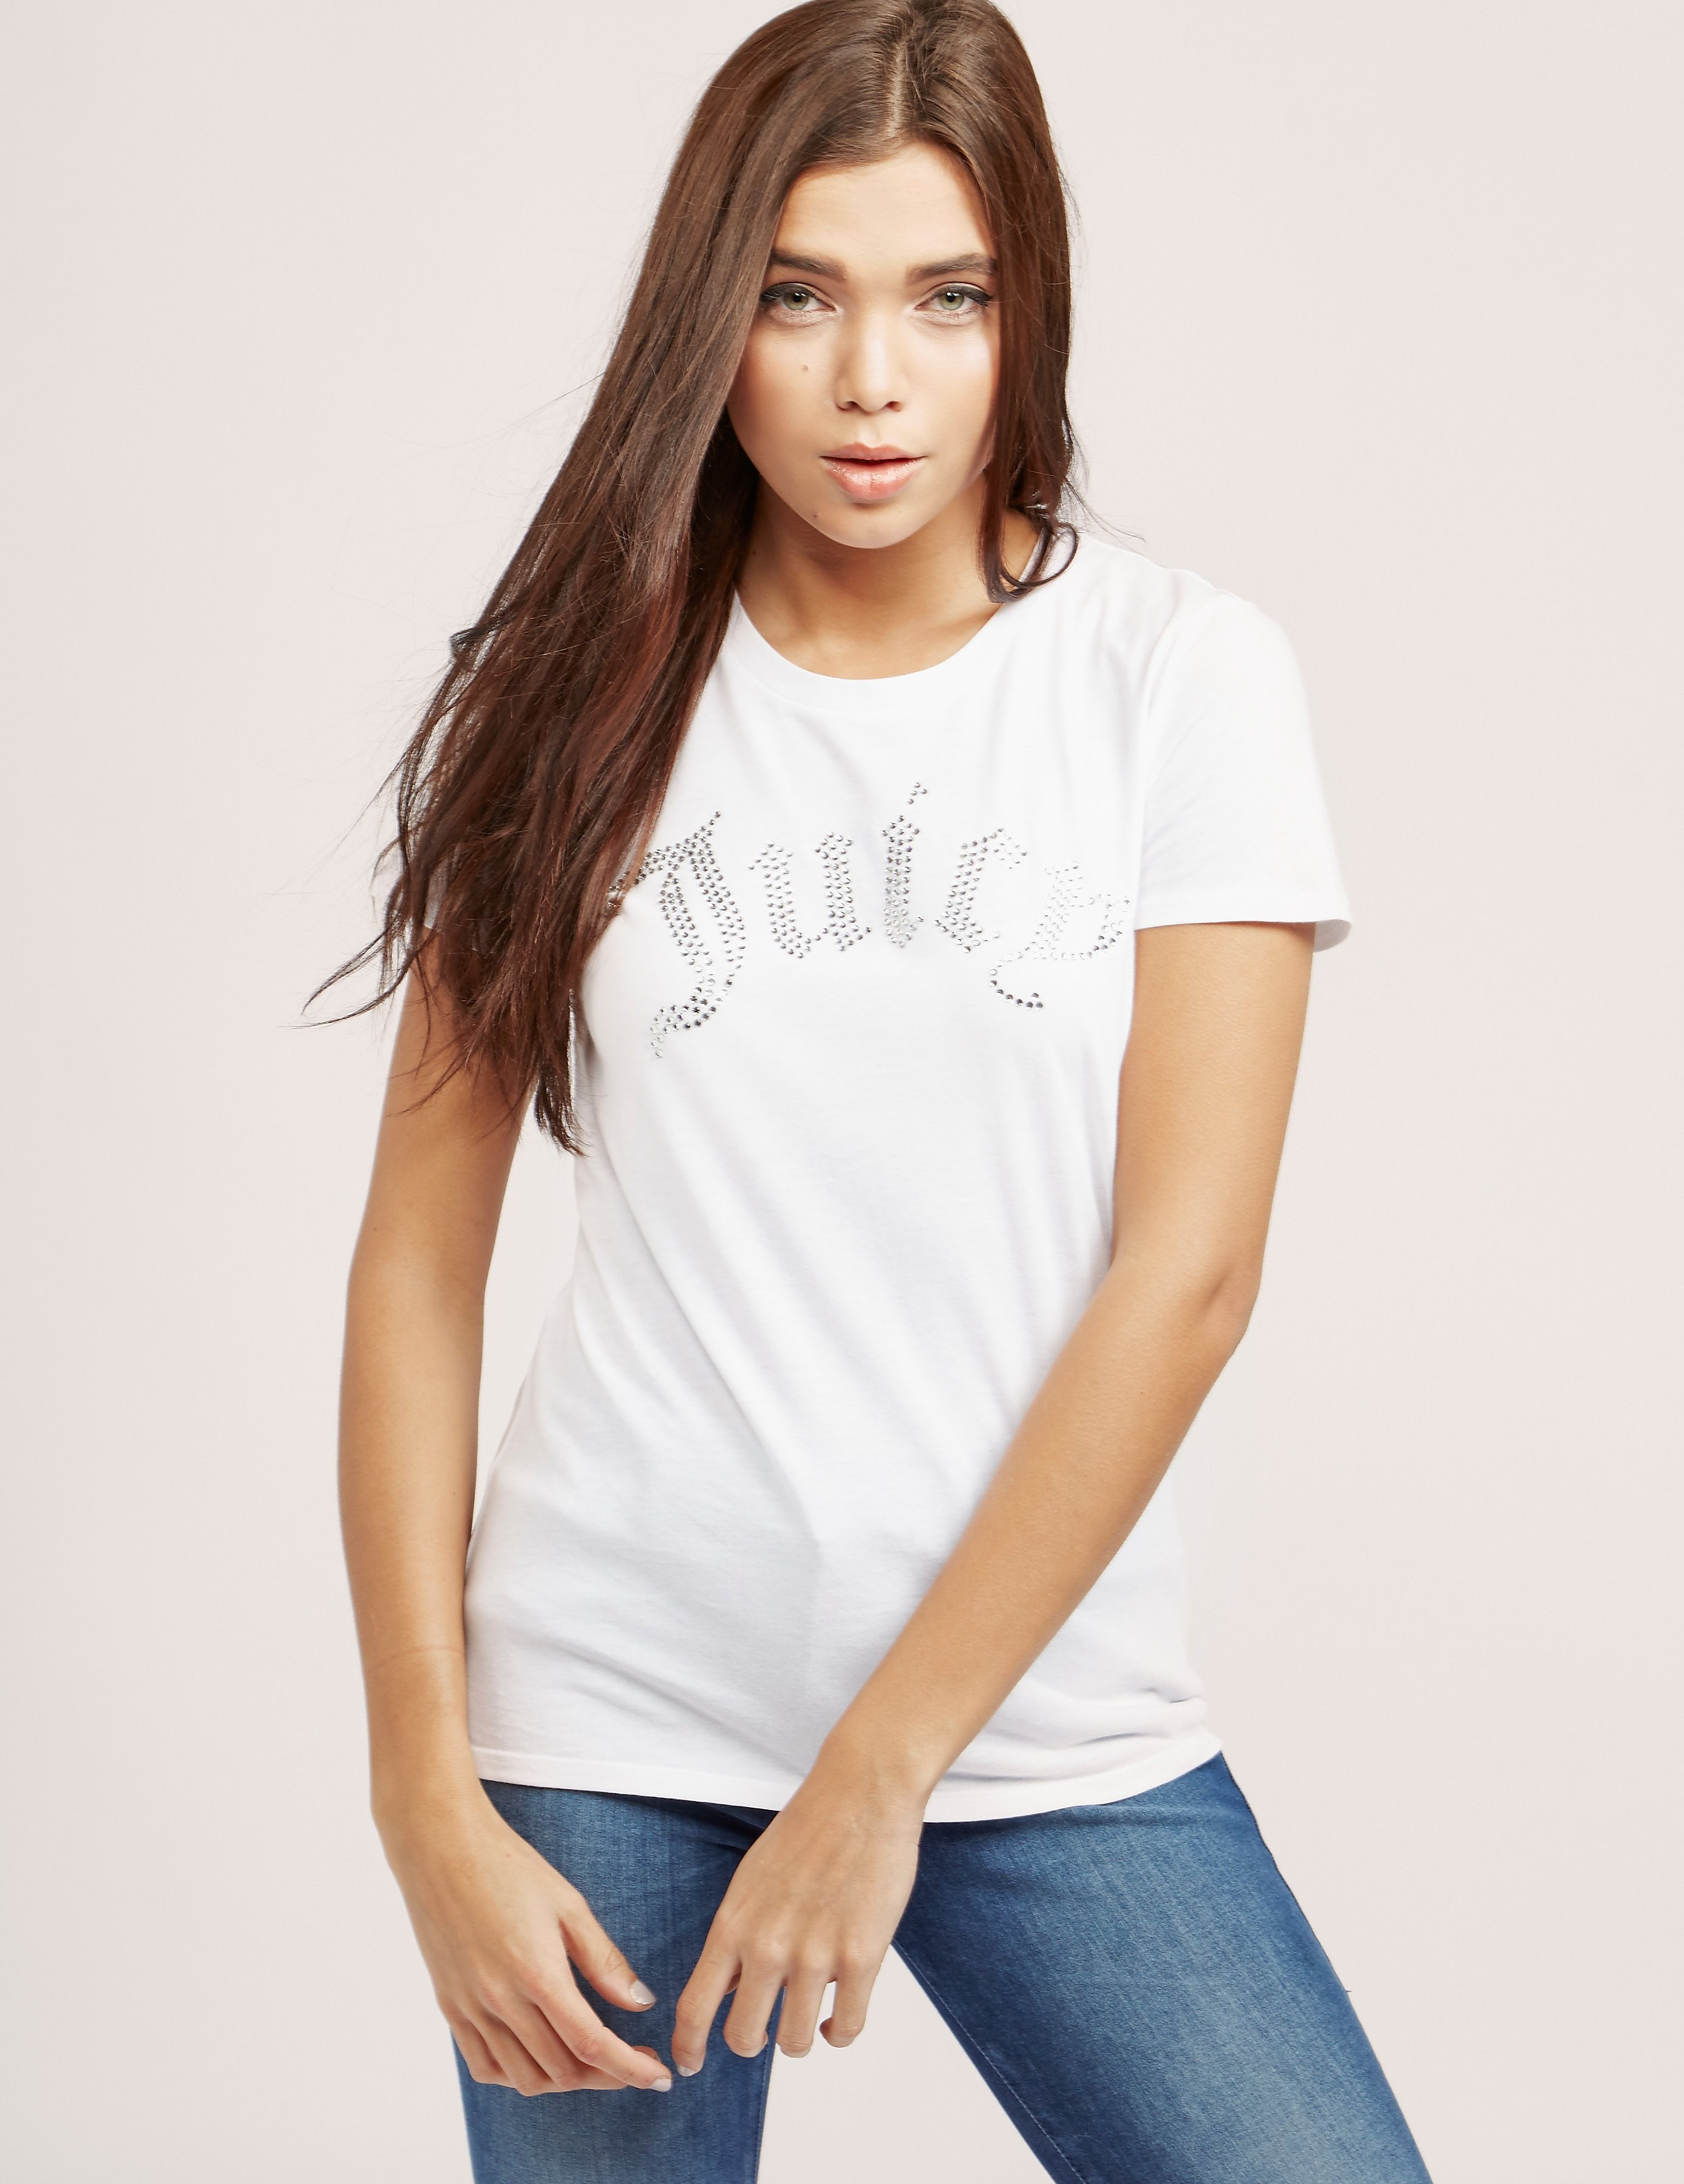 Juicy Couture Gothic Short Sleeve T-Shirt